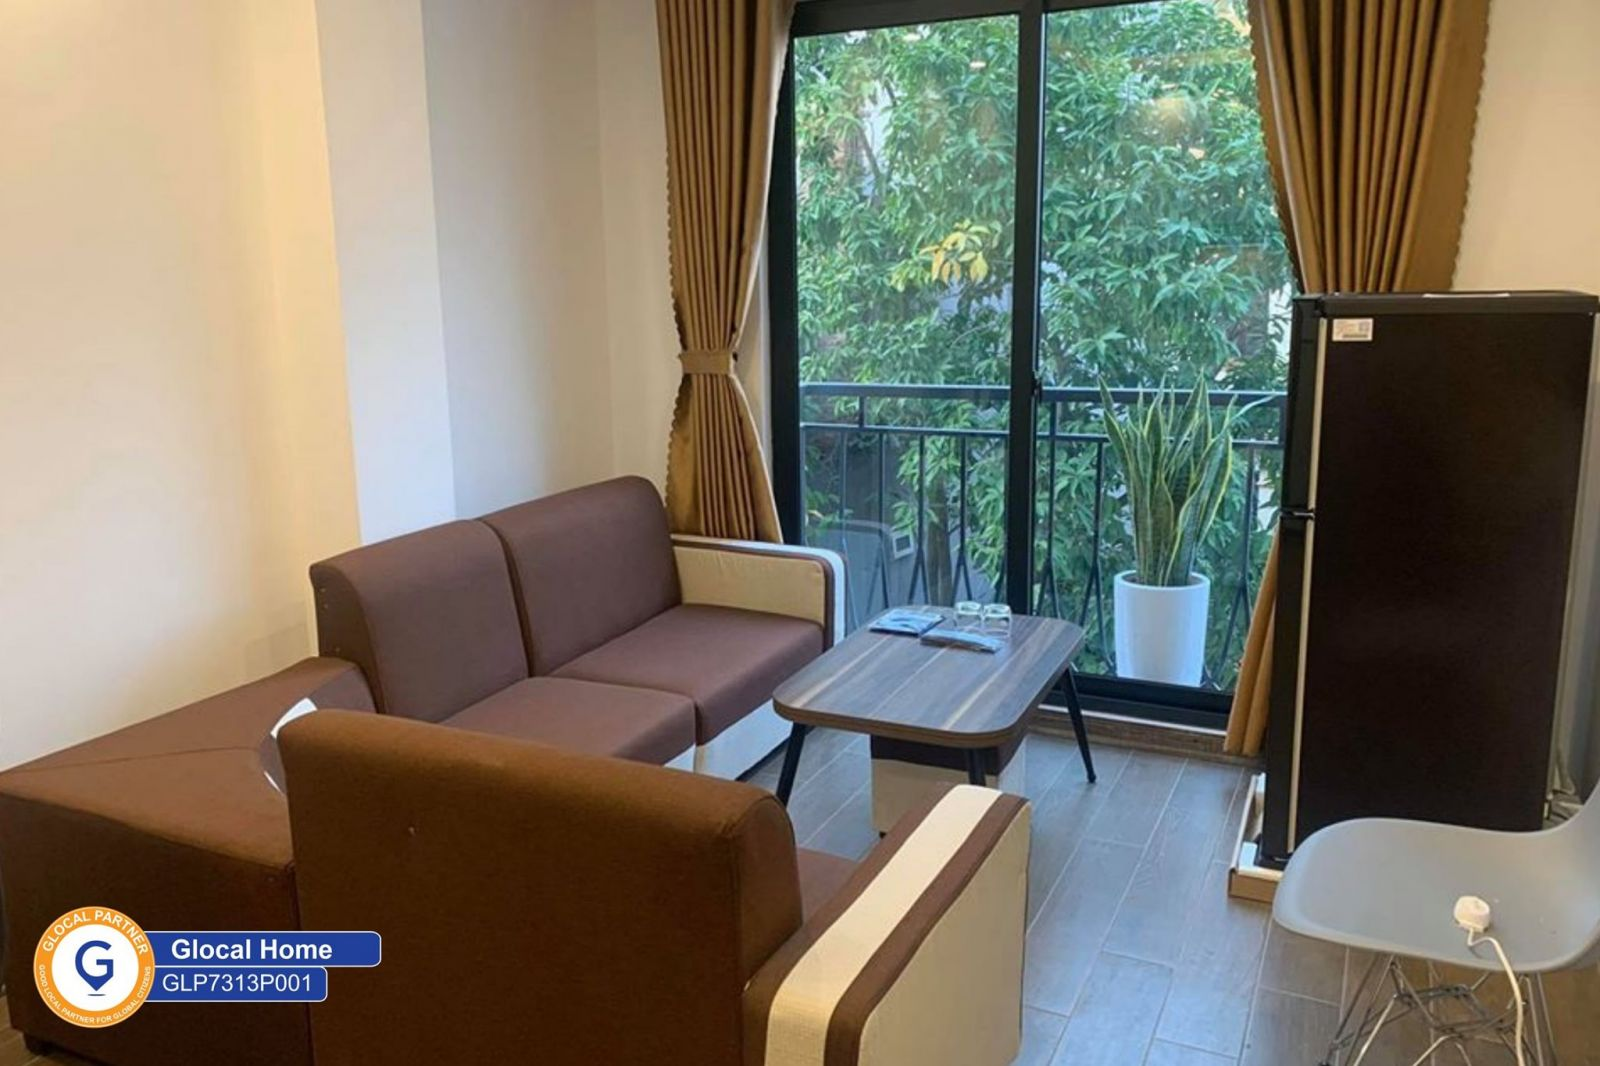 1 bedroom apartment with balcony and green tree view in Au Co street